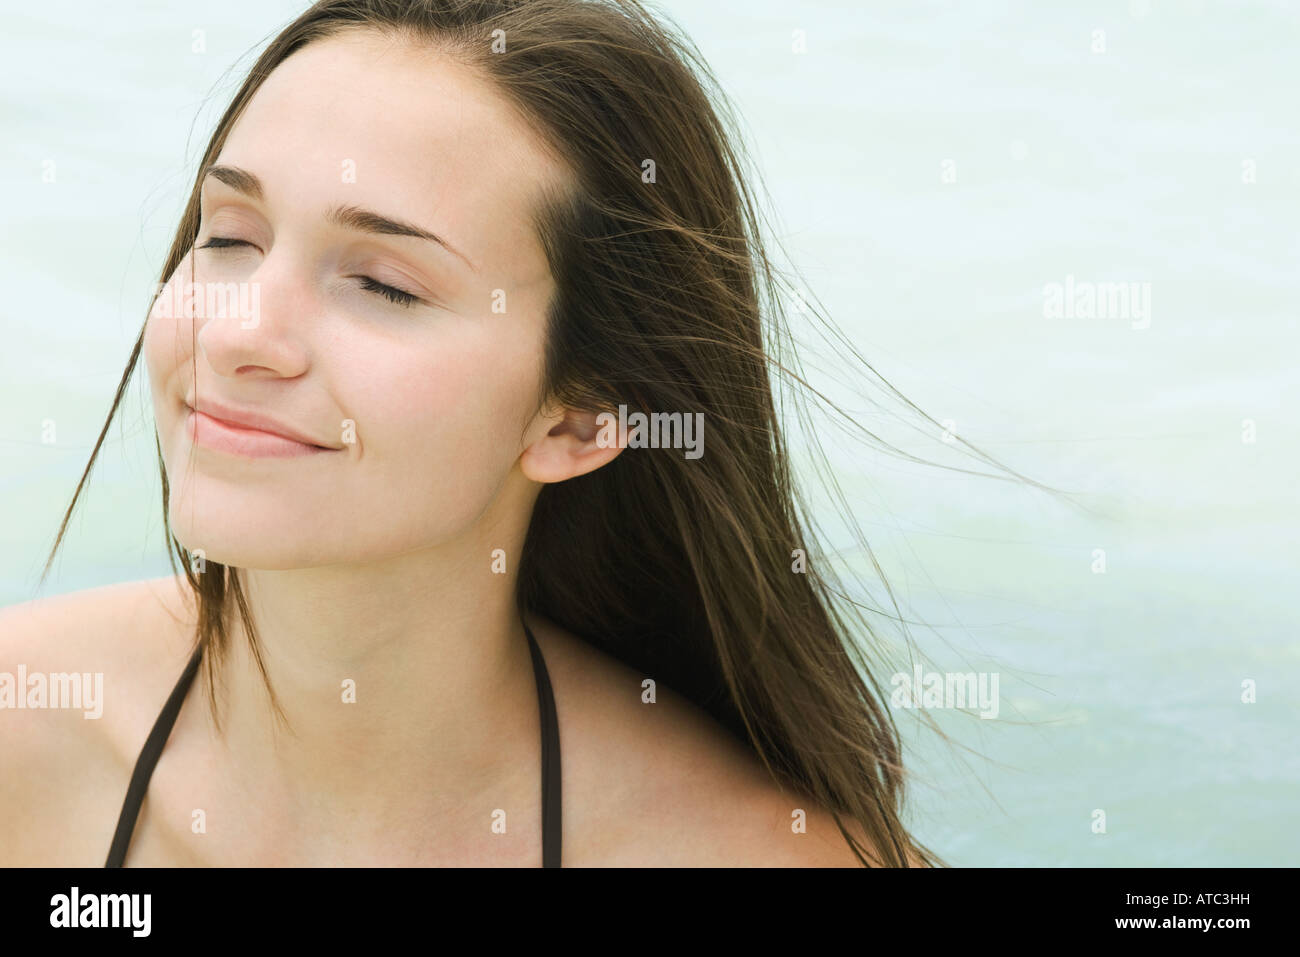 Young woman outdoors with eyes closed, hair tousled by breeze, close-up - Stock Image